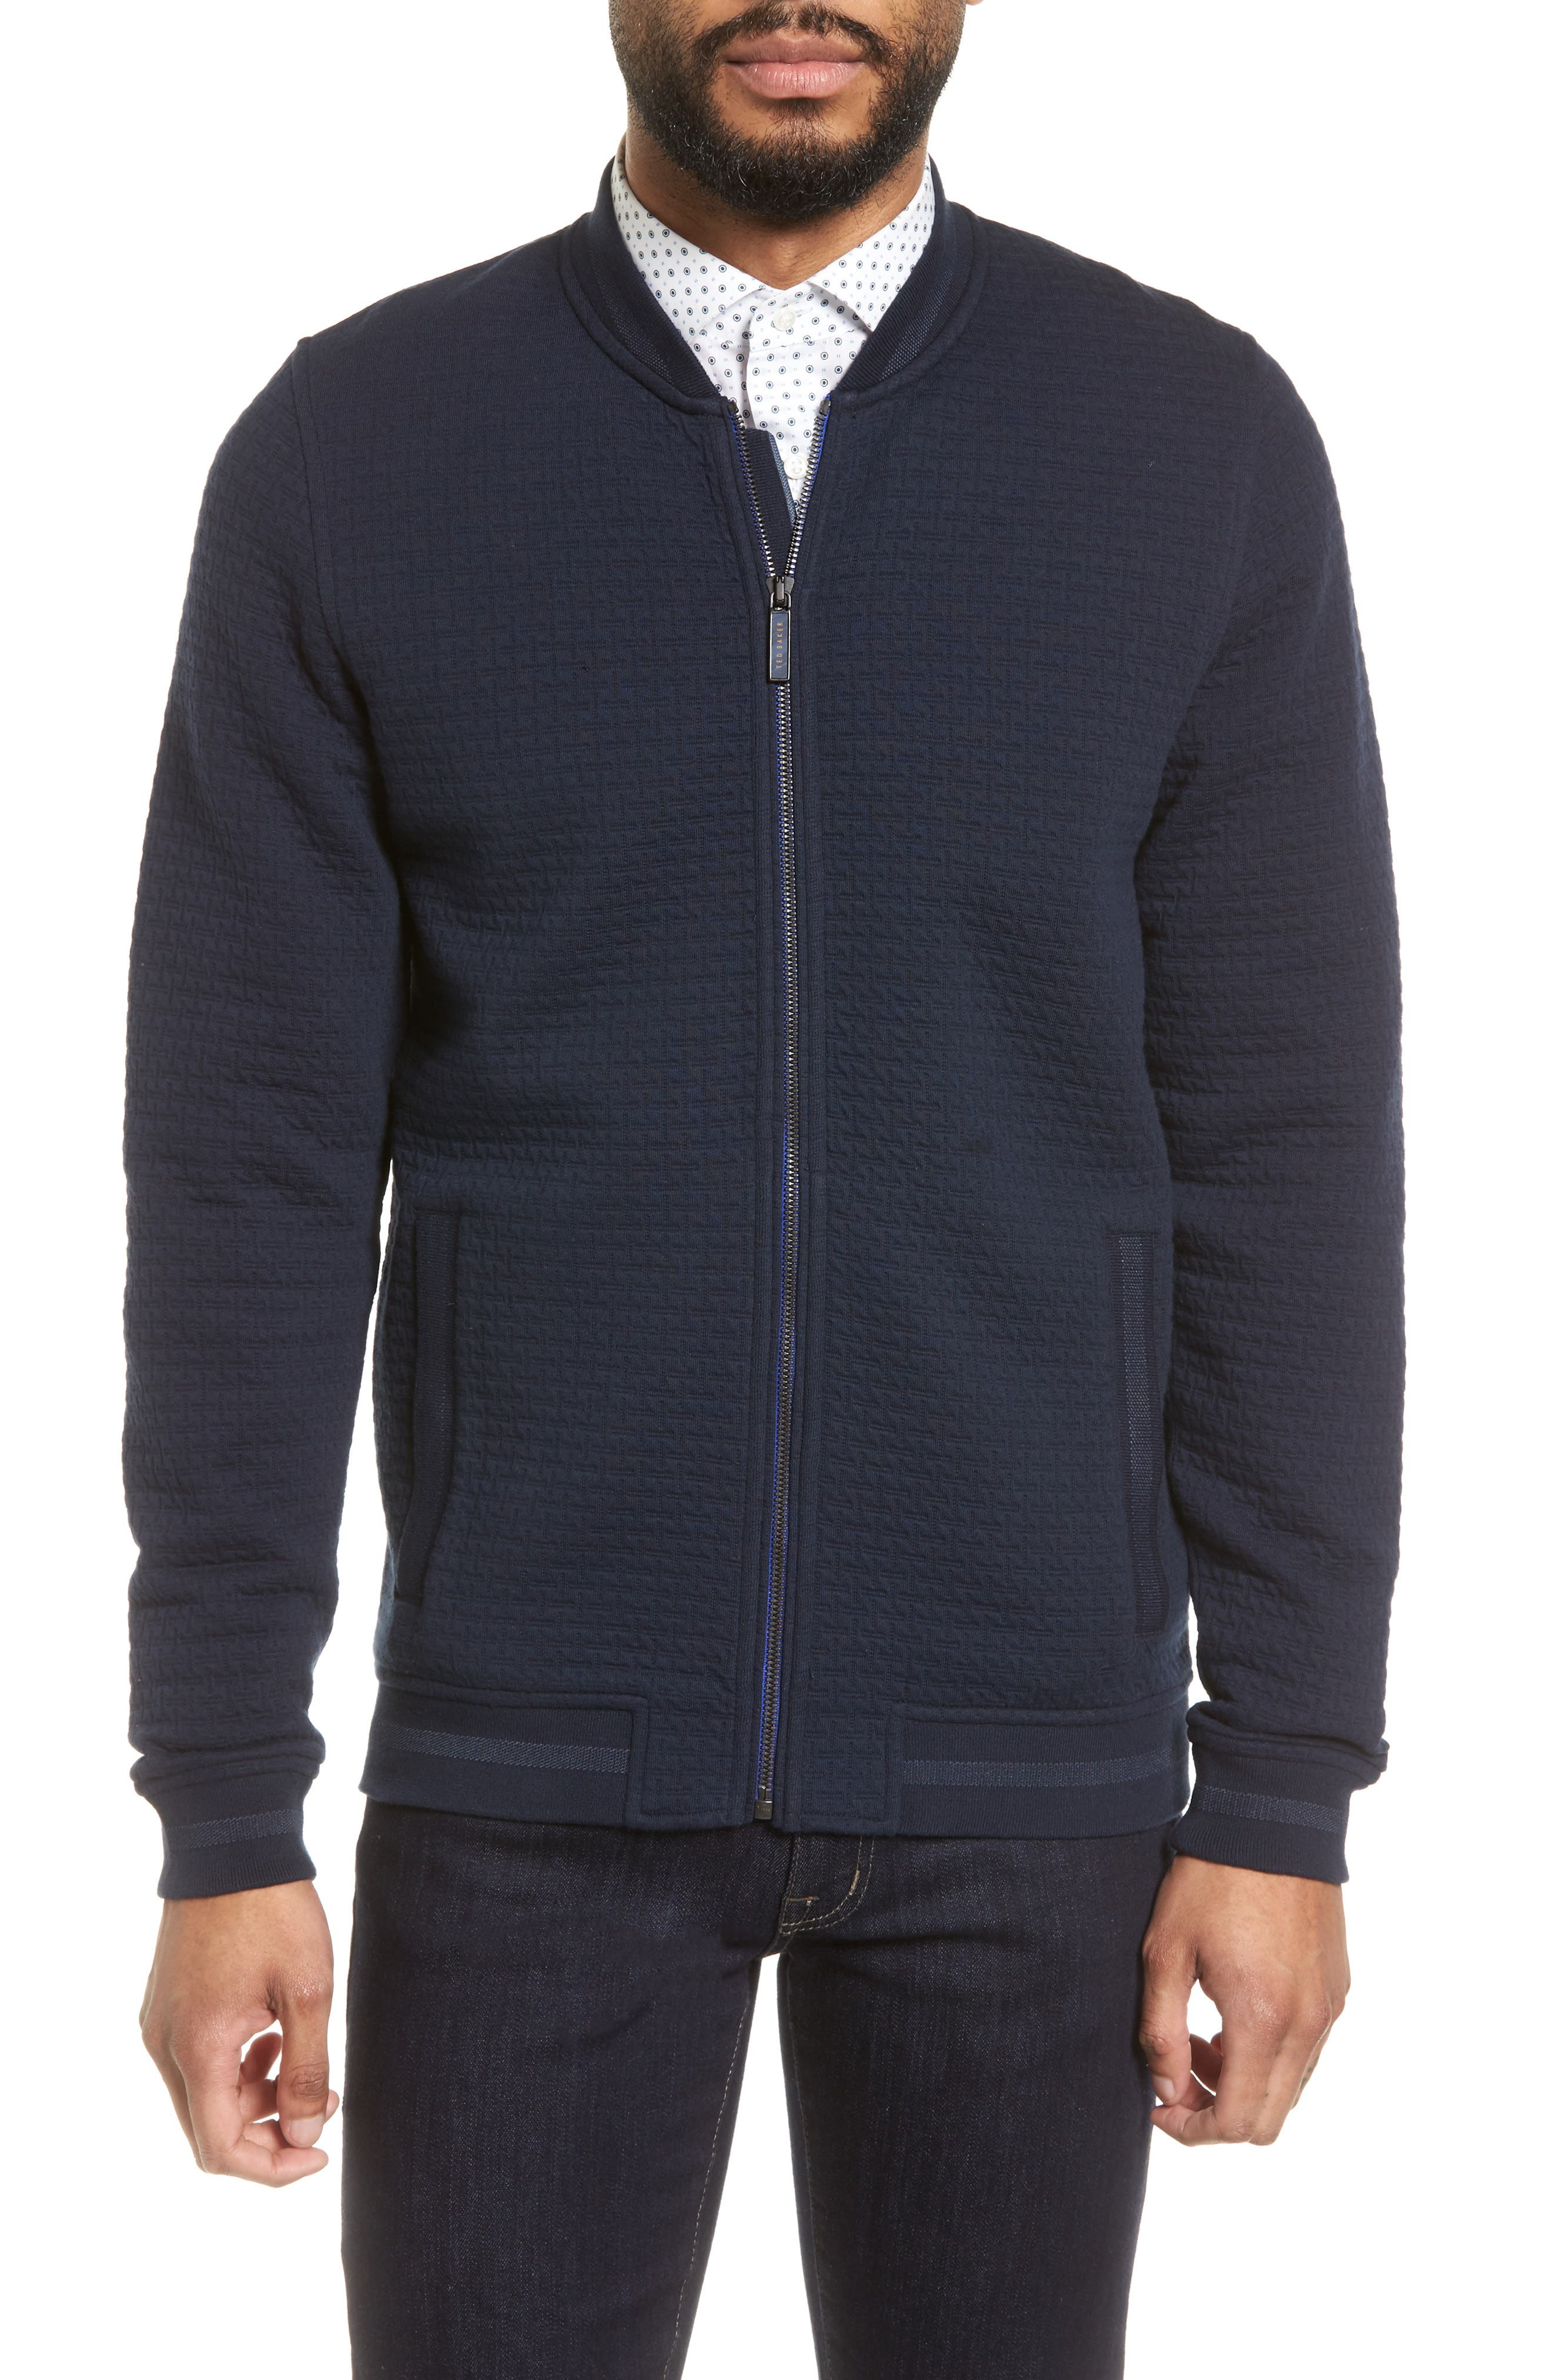 Akitaa Quilted Jacquard Bomber Jacket,                         Main,                         color, Navy